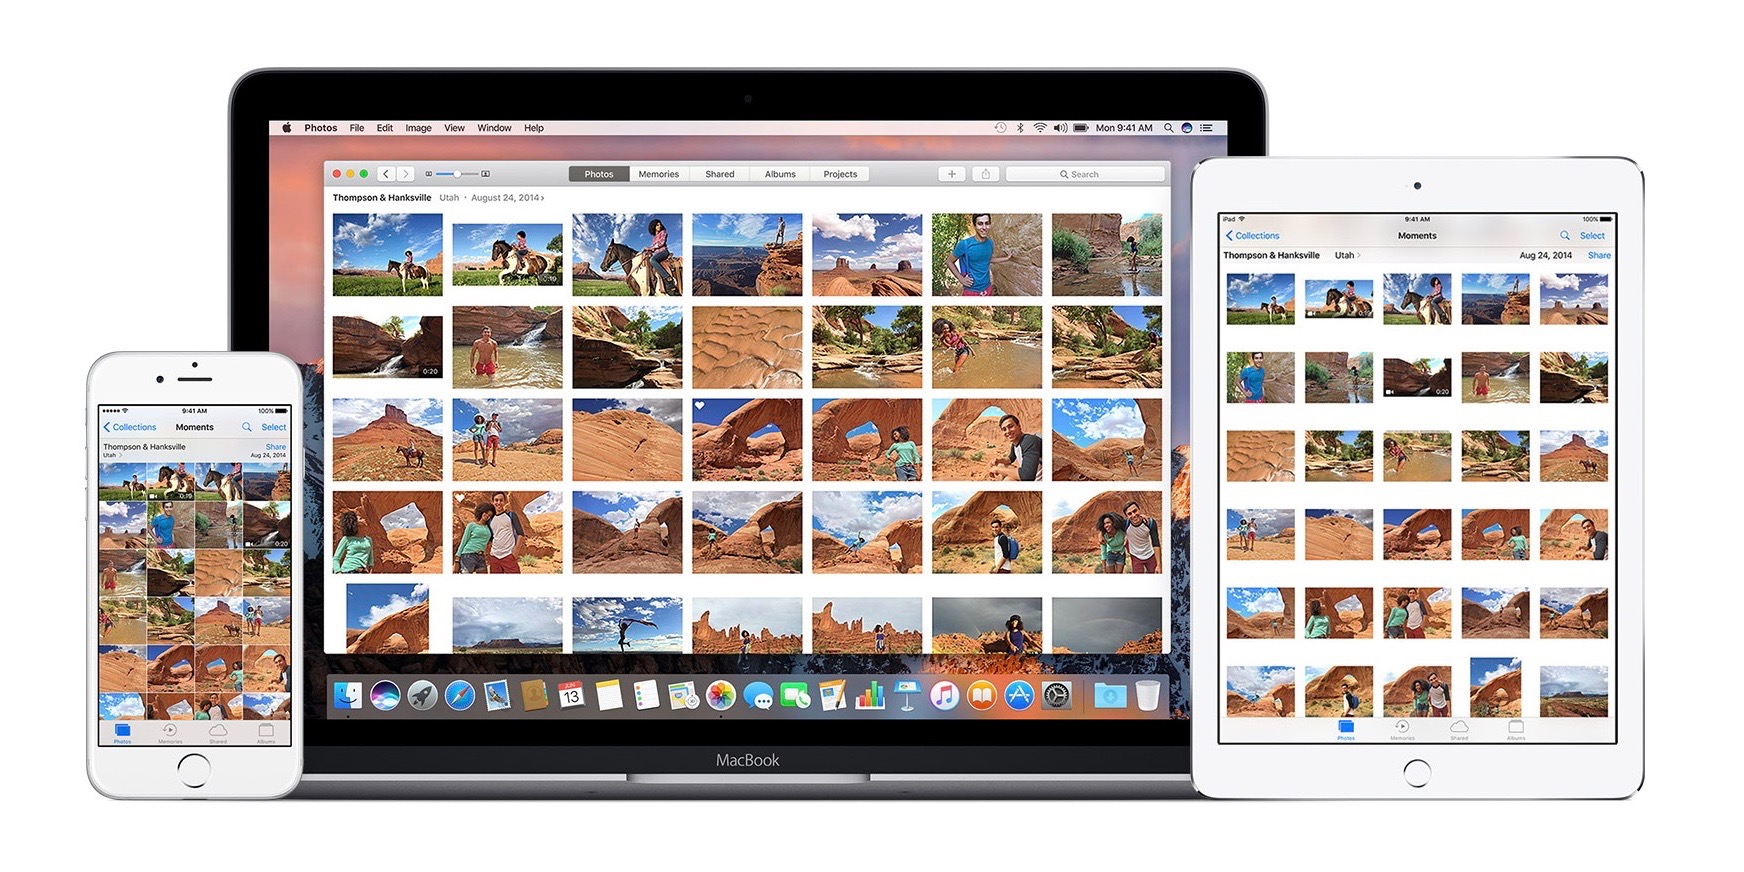 iCloud or iMessage? AirDrop or email? Chart maps best ways to share iPhone photography